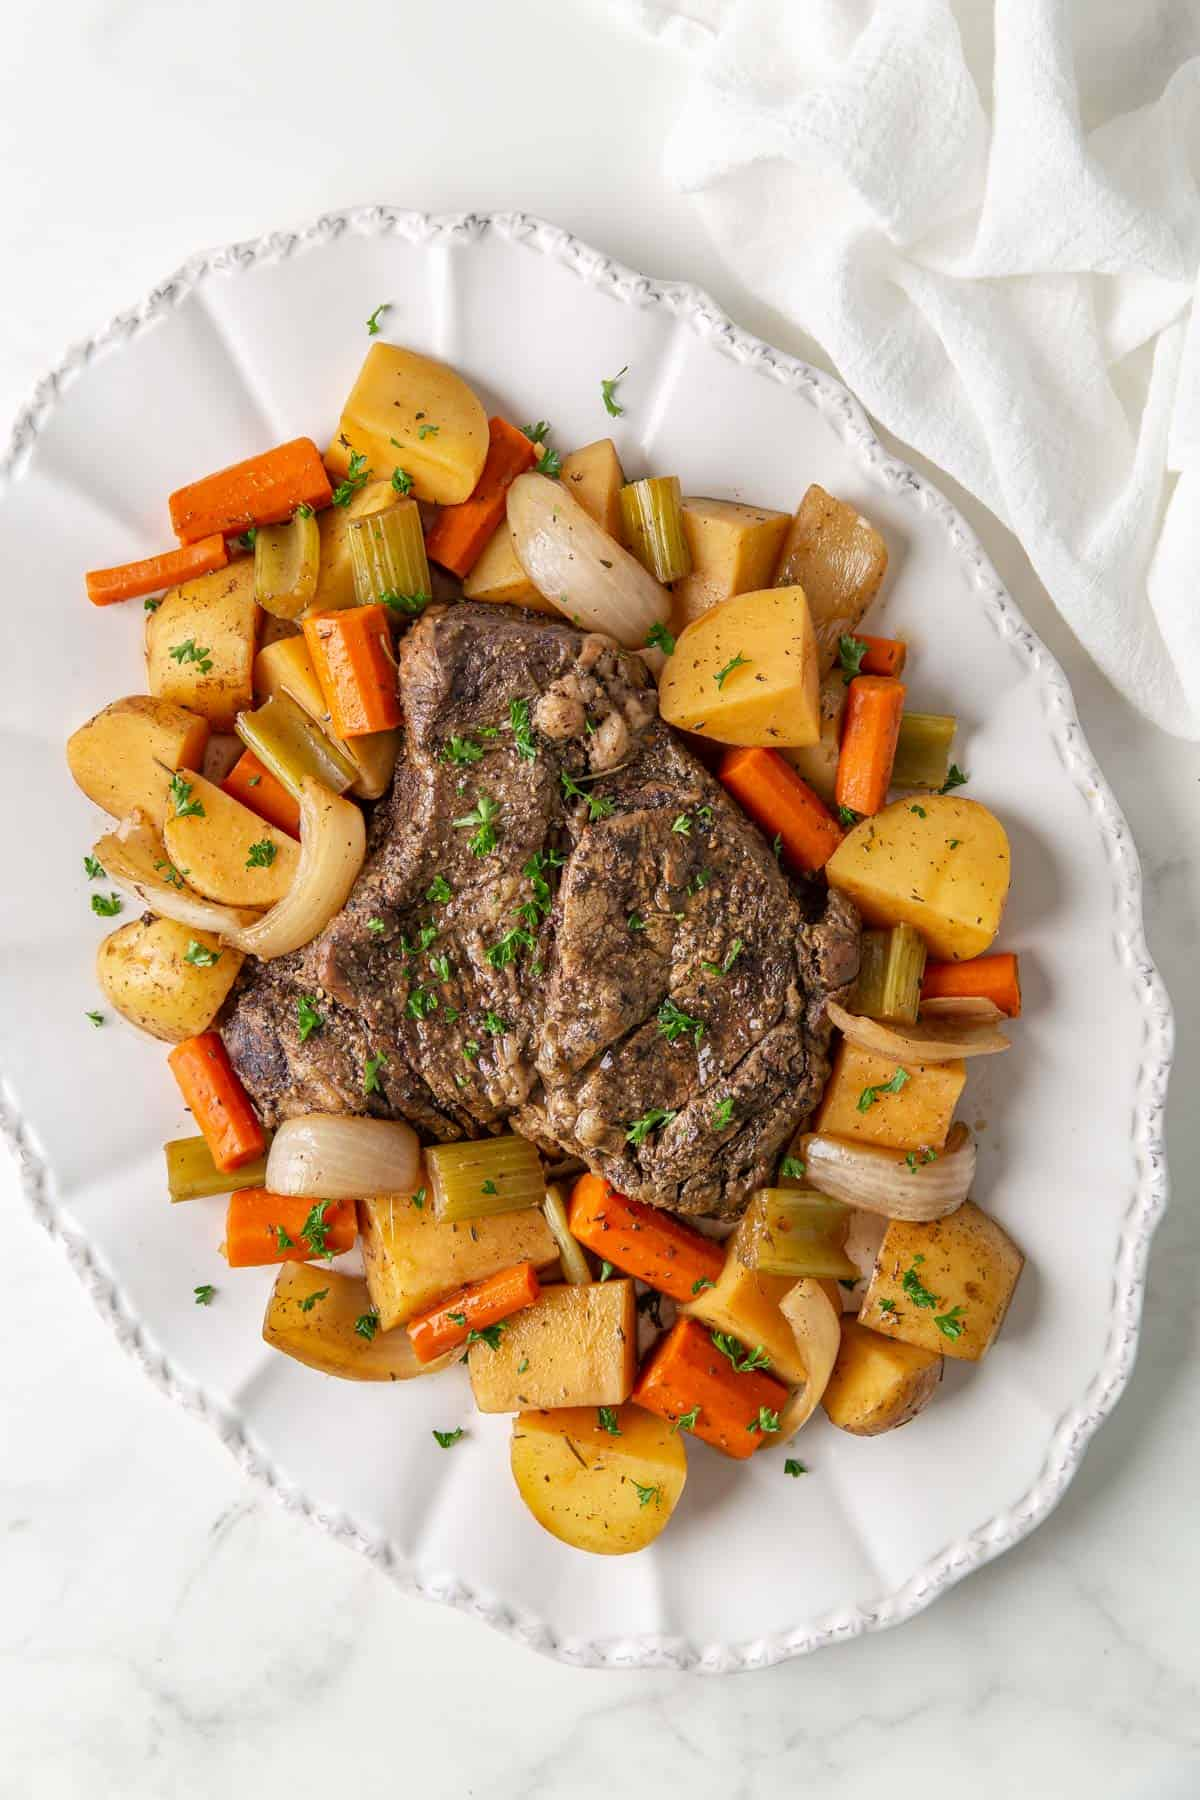 Overhead view of slow cooked beef chuck roast and vegetables on a white platter.